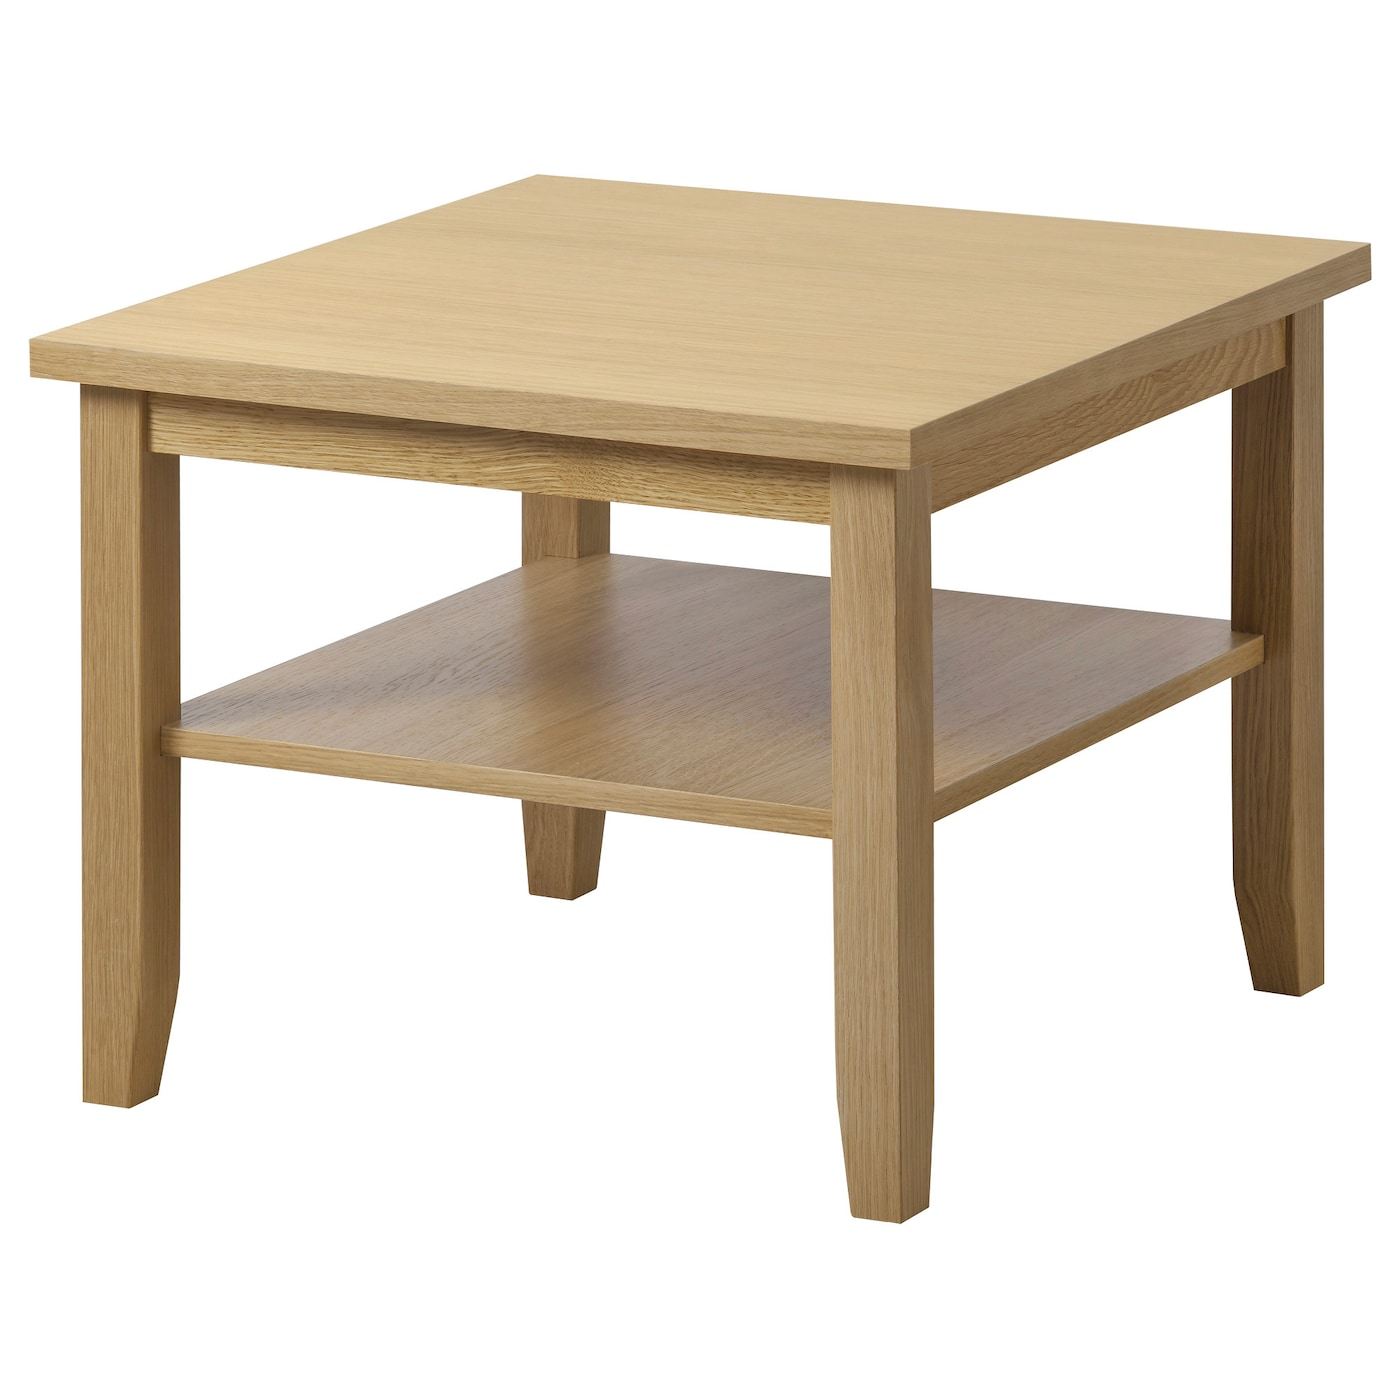 Skoghall coffee table oak 55x55 cm ikea Side and coffee tables